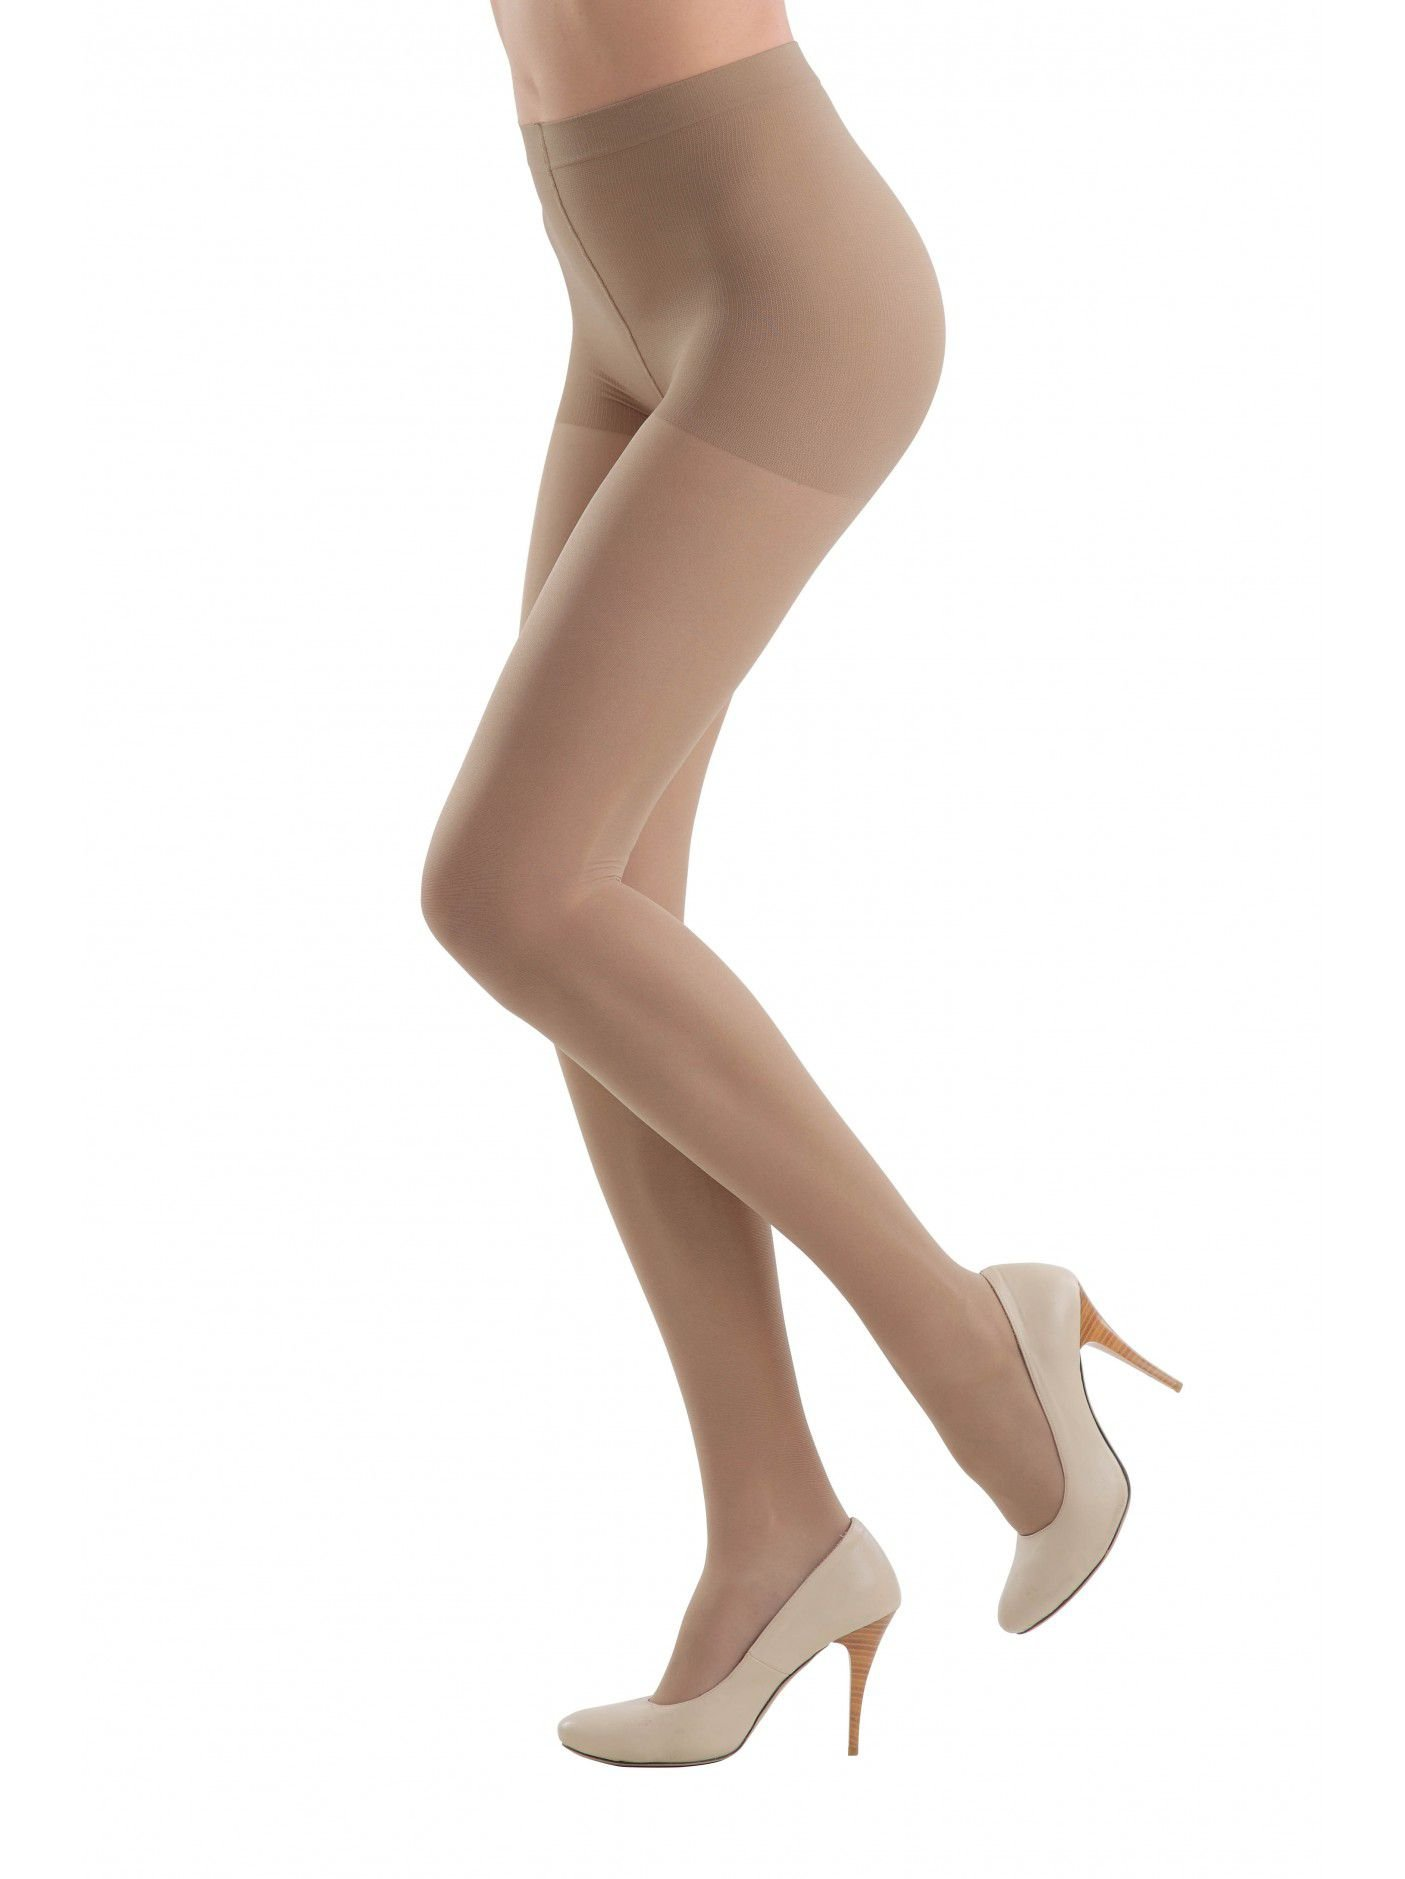 Conte elegant Womens High Waisted Compression Pantyhose Tights with Control Top Active 40,Nude (Natural),Large